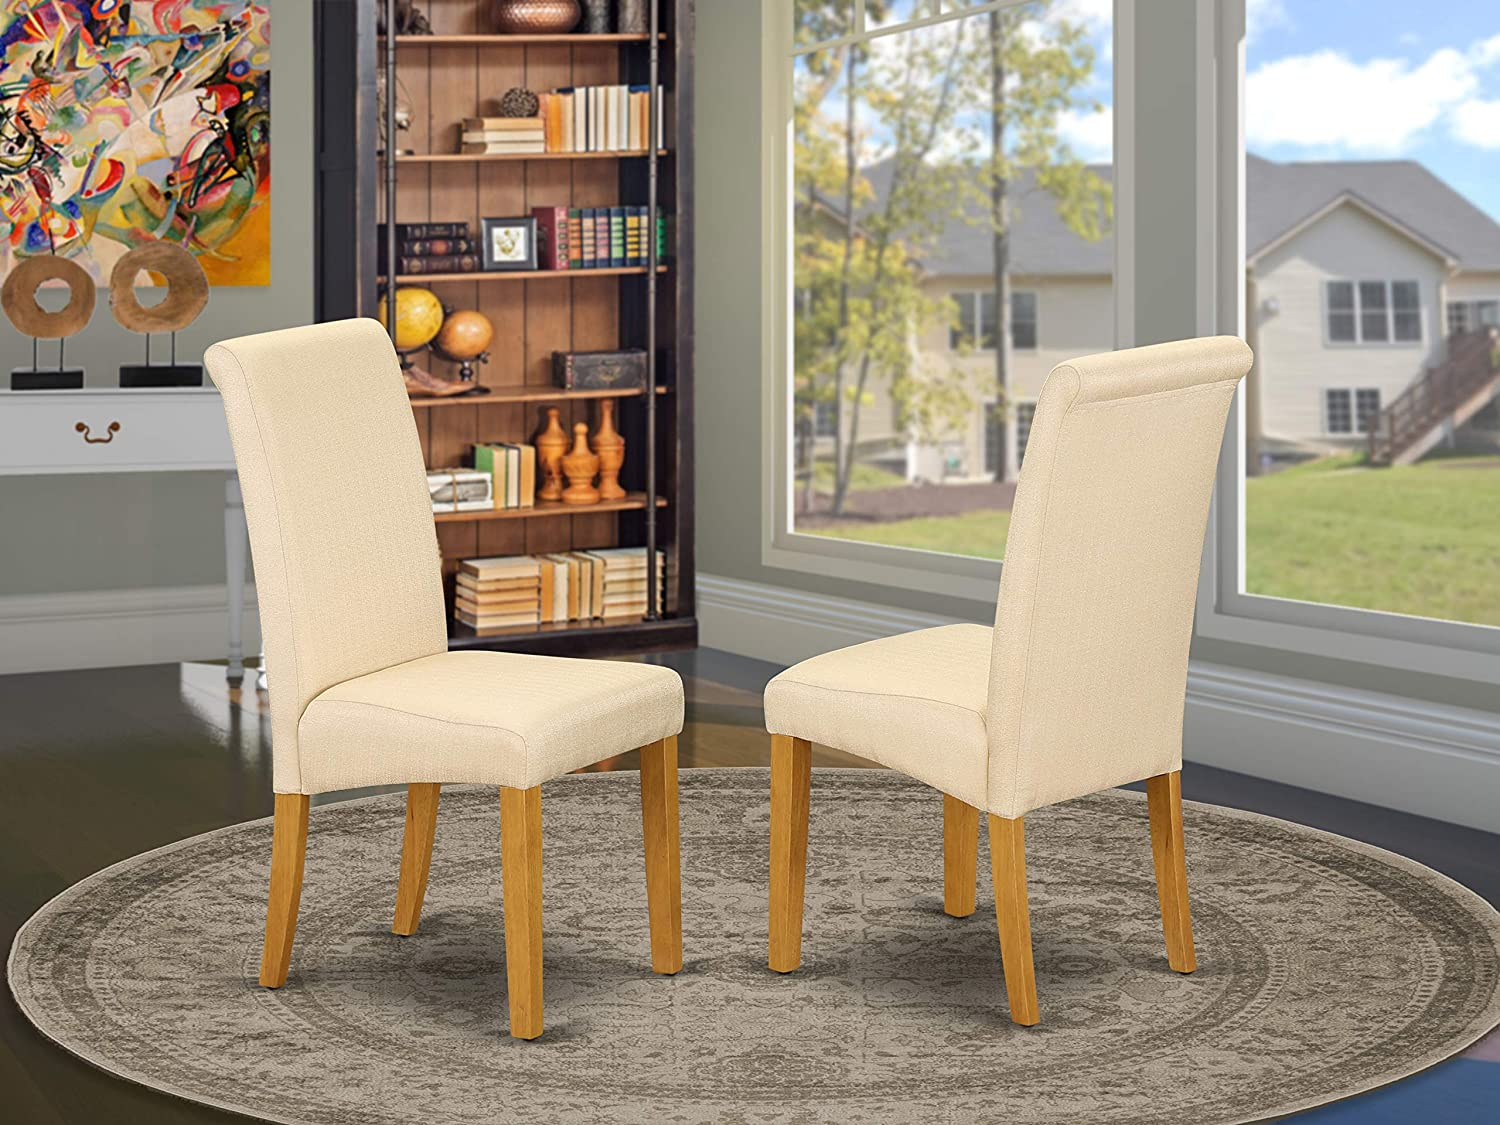 East West Furniture Living Room Dining Chair Nice Light Beige Linen Fabric Hardwood Oak Finish Legs Modern Parsons Dining Chairs Set Of 2 Furniture Decor